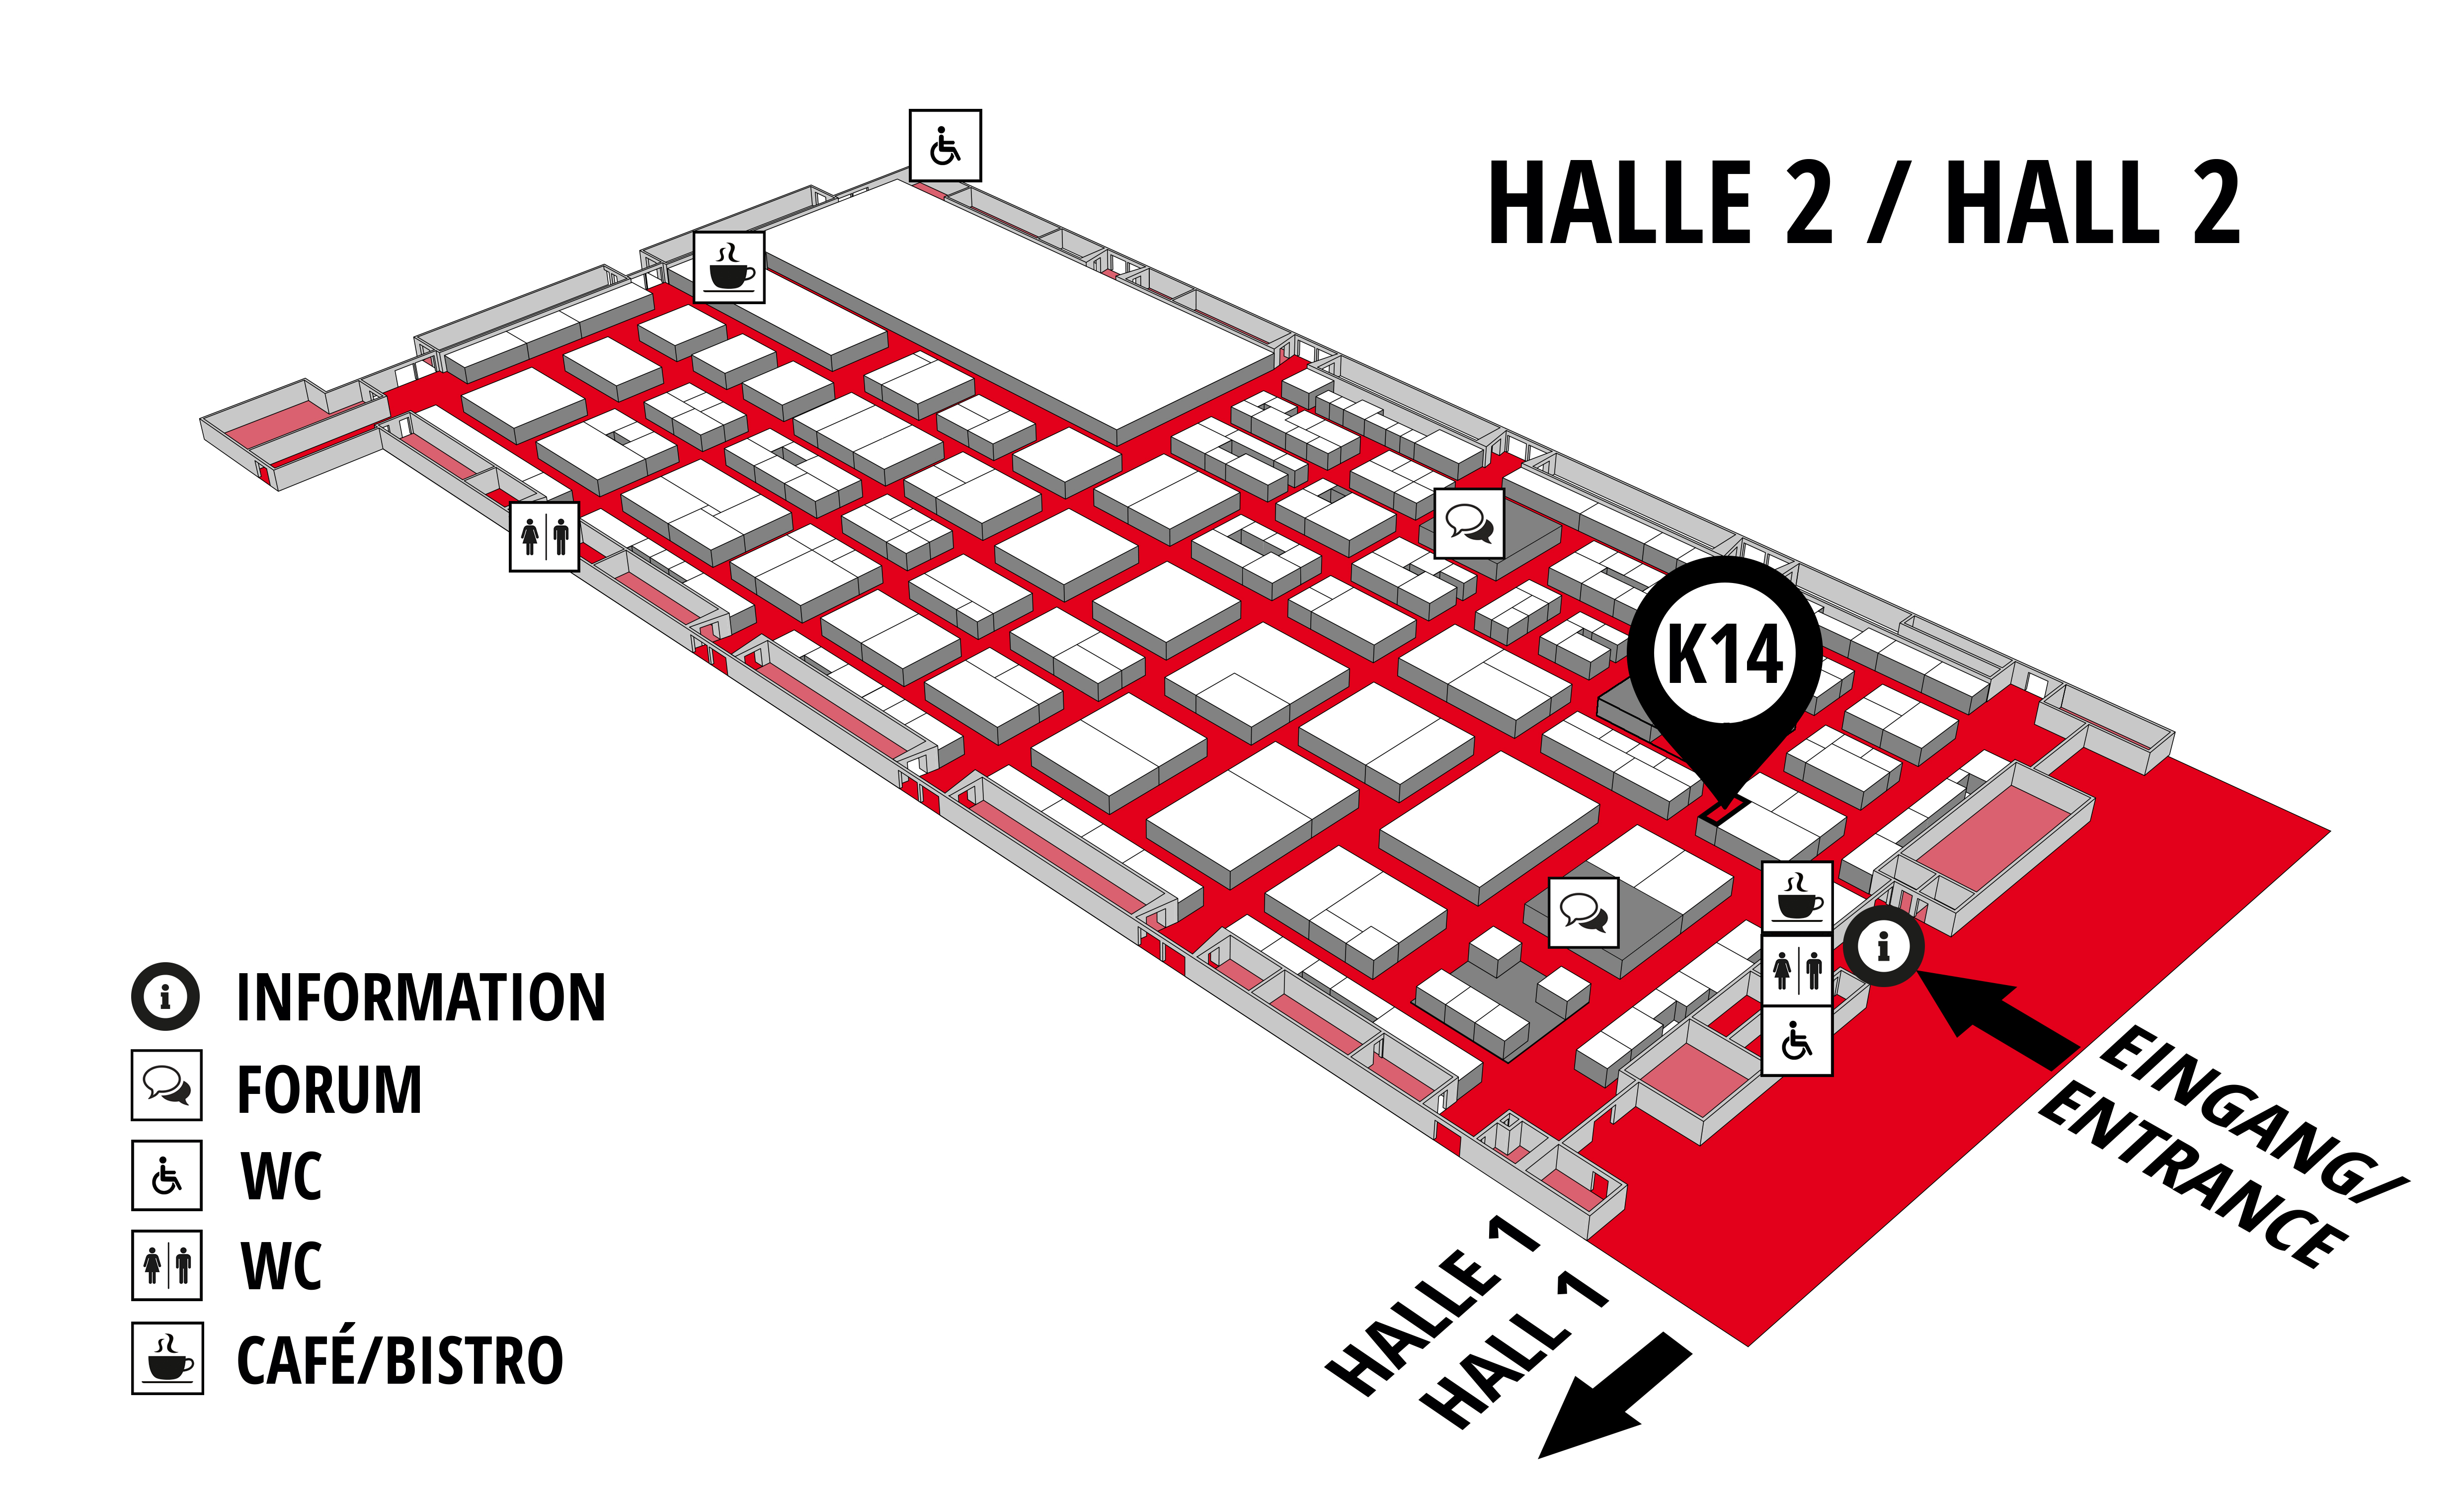 REHAB - Rehabilitation | Therapy | Care | Inclusion hall map (Hall 2): stand K14